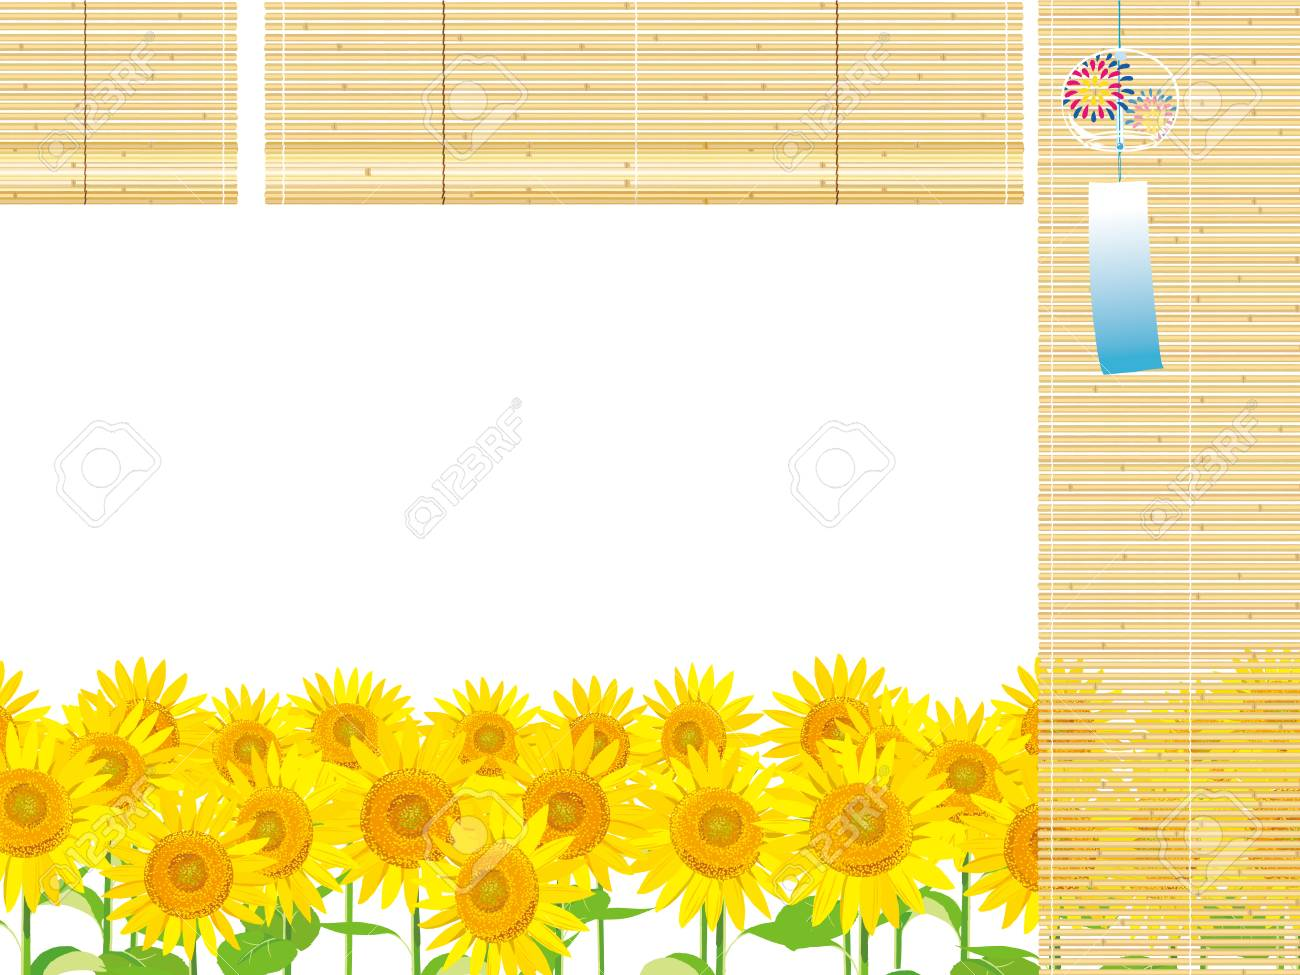 Vector Illustration Wallpaper And Background Landscape Sunflowers